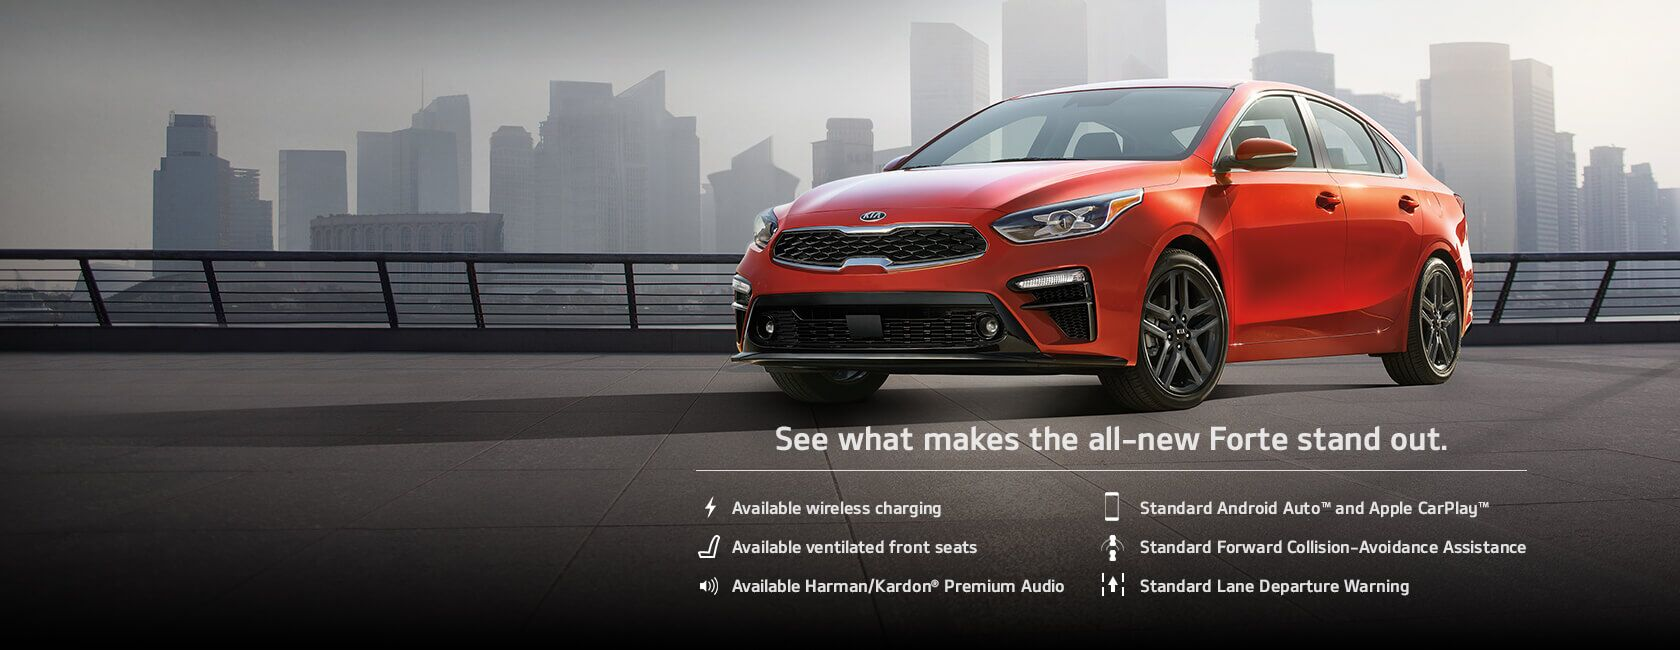 2019 Kia Forte in South Attleboro, MA